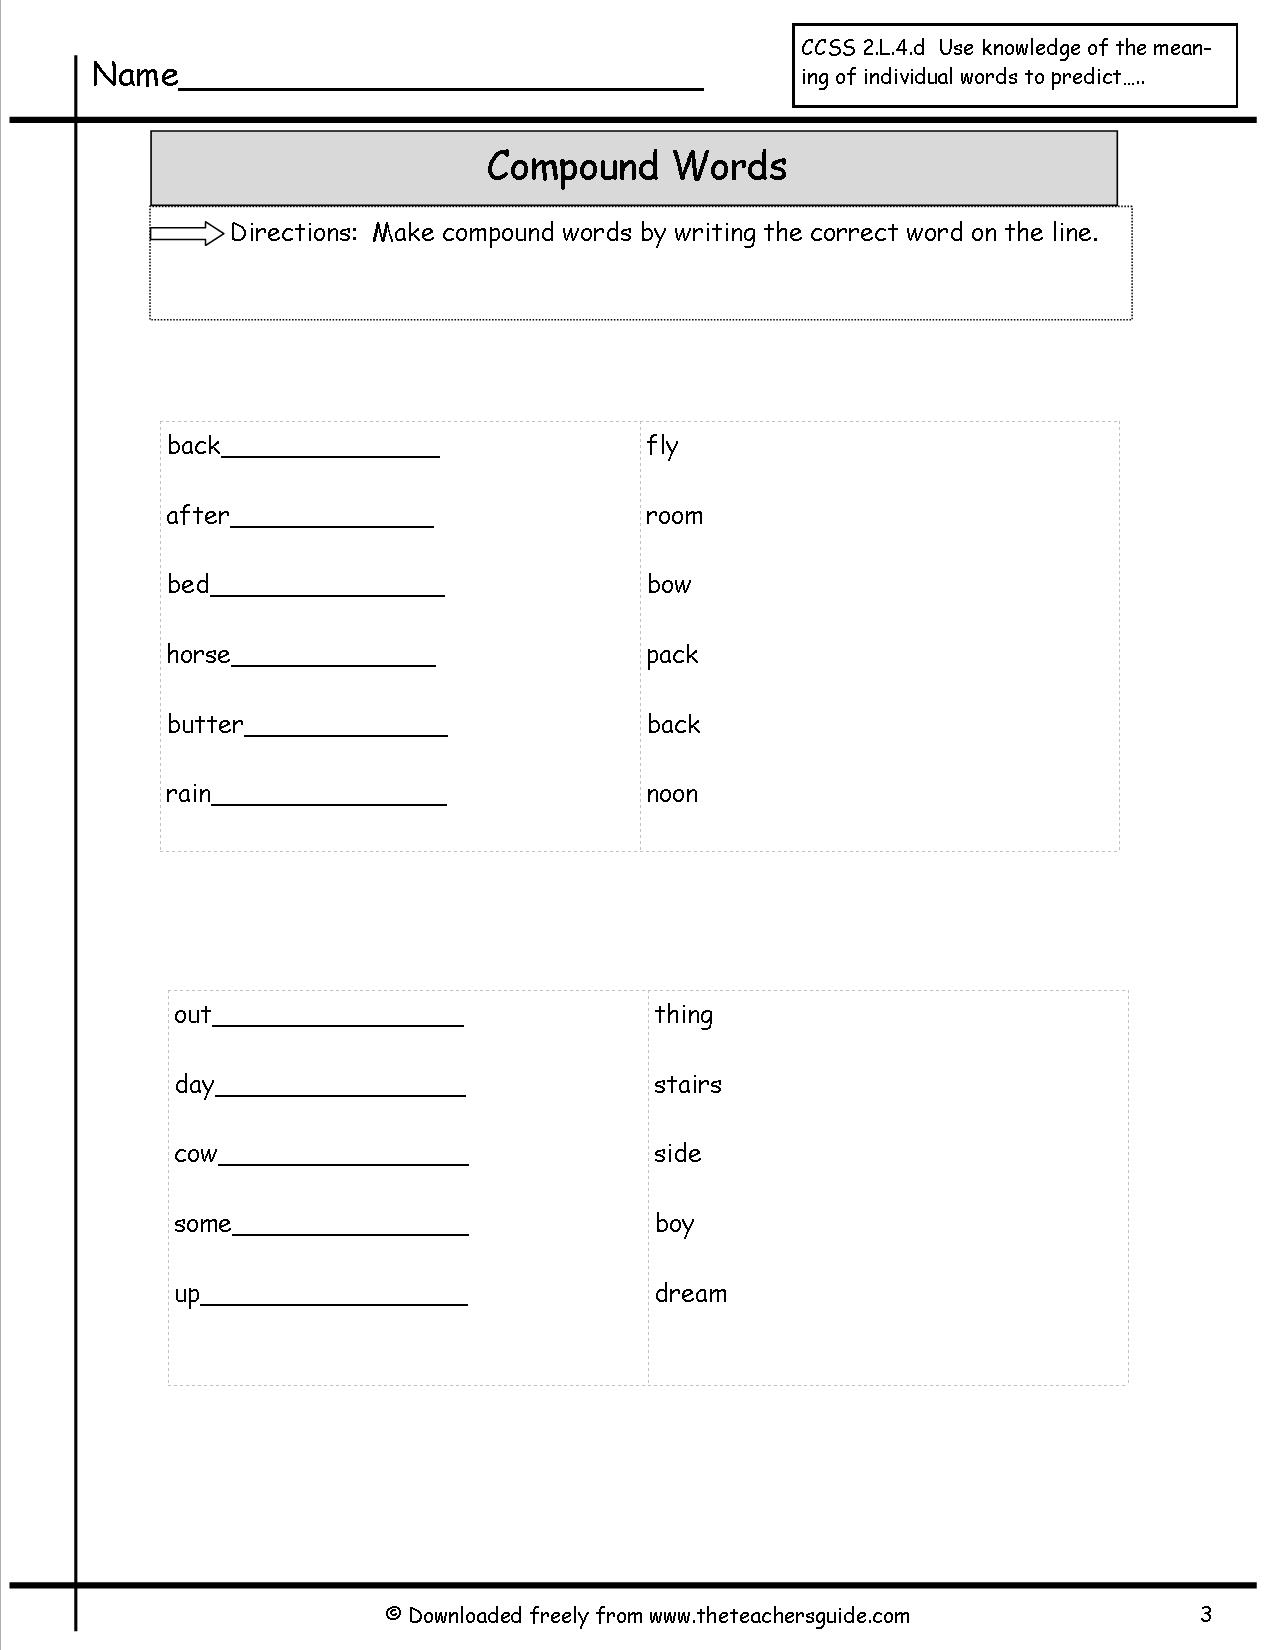 9 Best Images Of Making New Words Worksheet